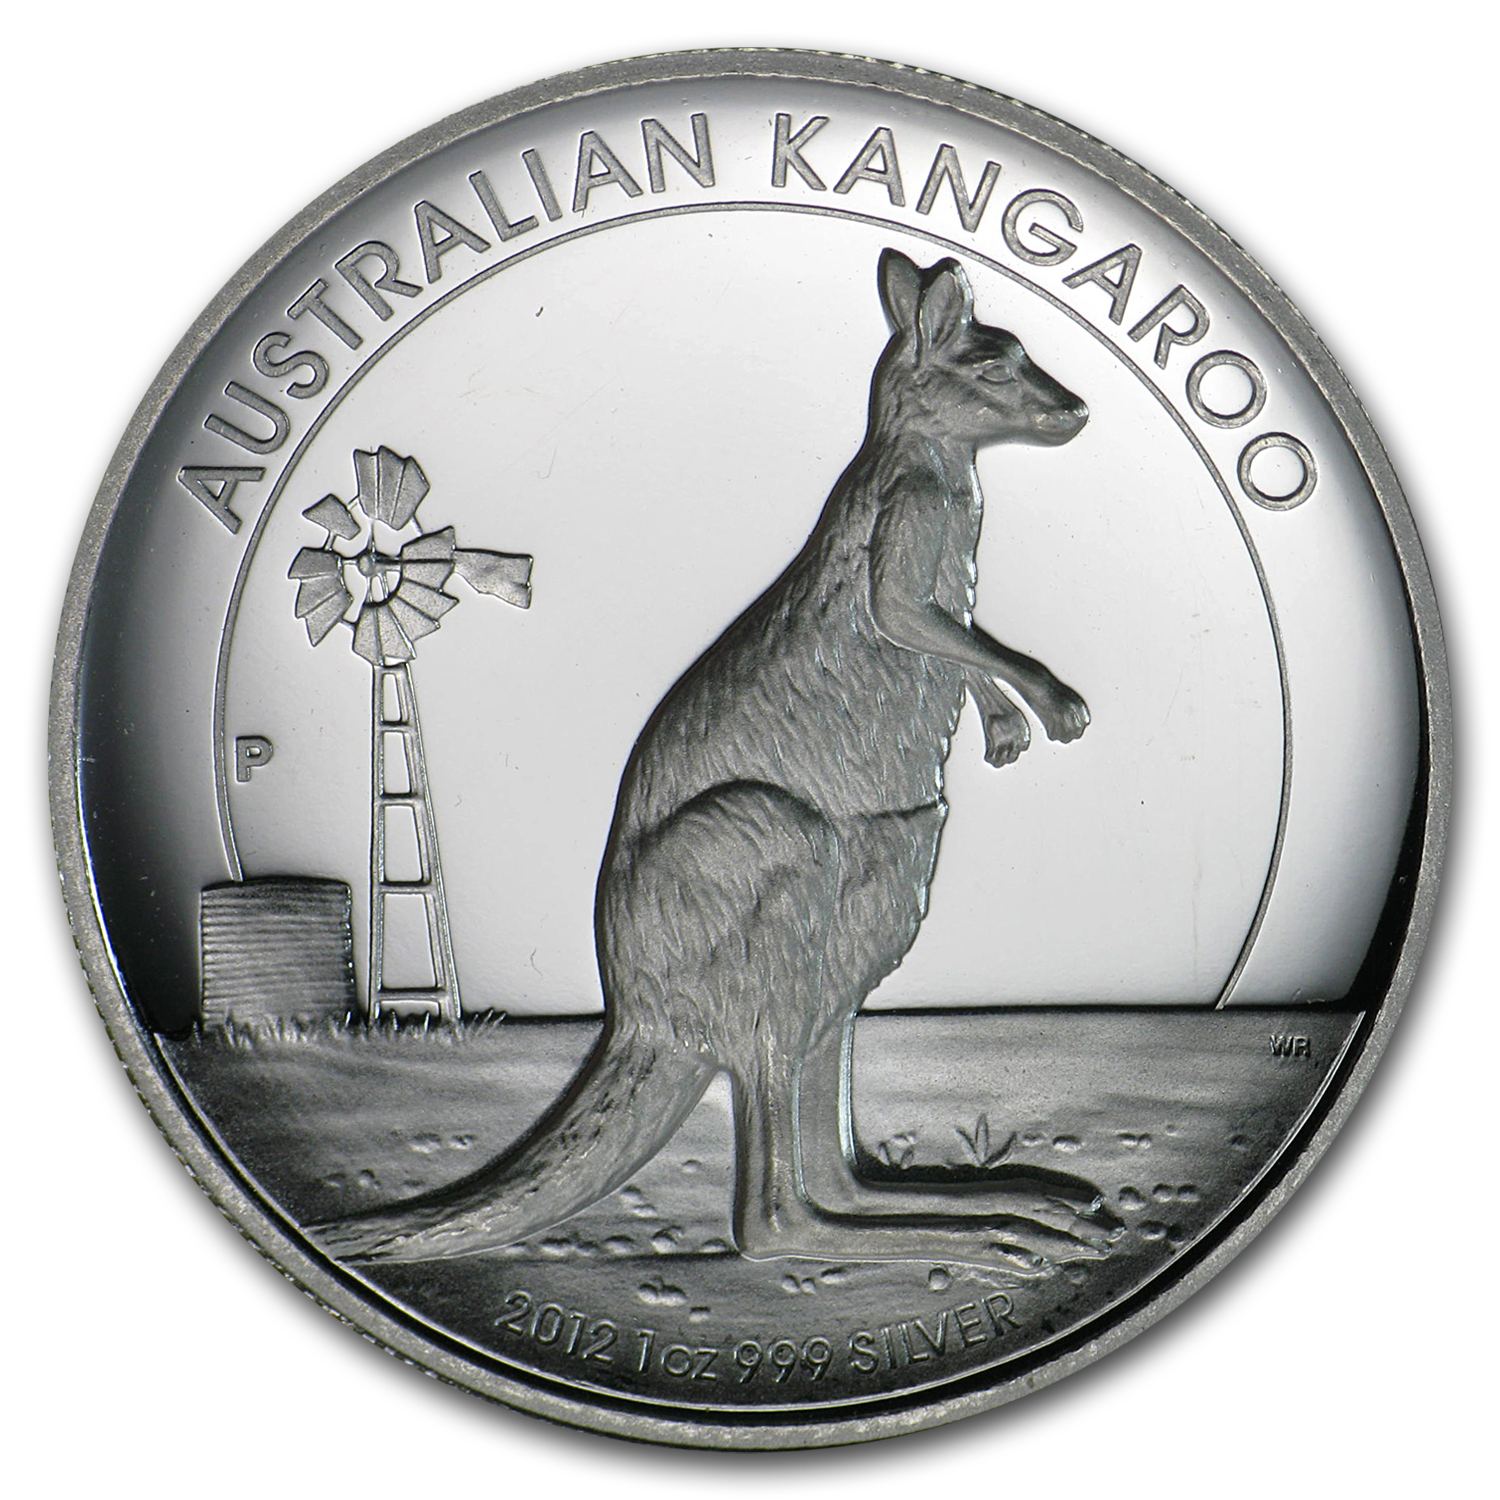 2012 1 oz Proof Silver Australian High Relief Kangaroo -Abrasions